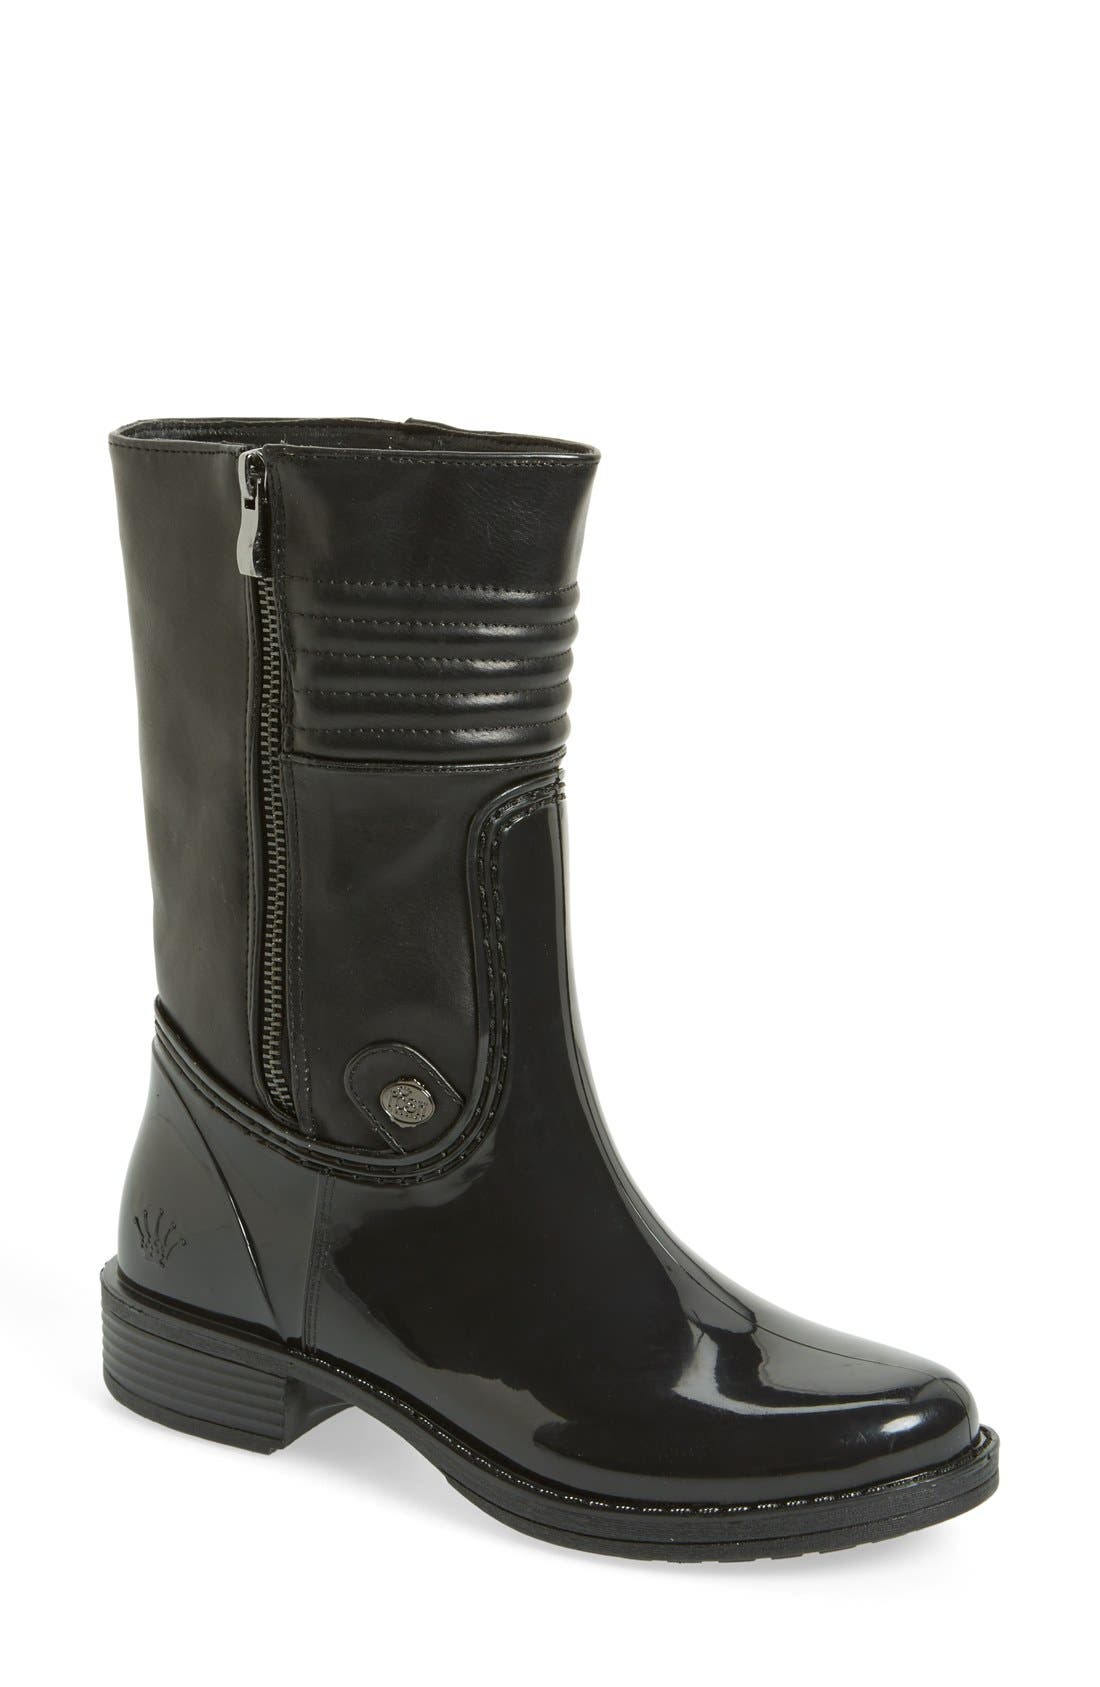 POSH WELLIES 'Calcite' Moto Rain Boot